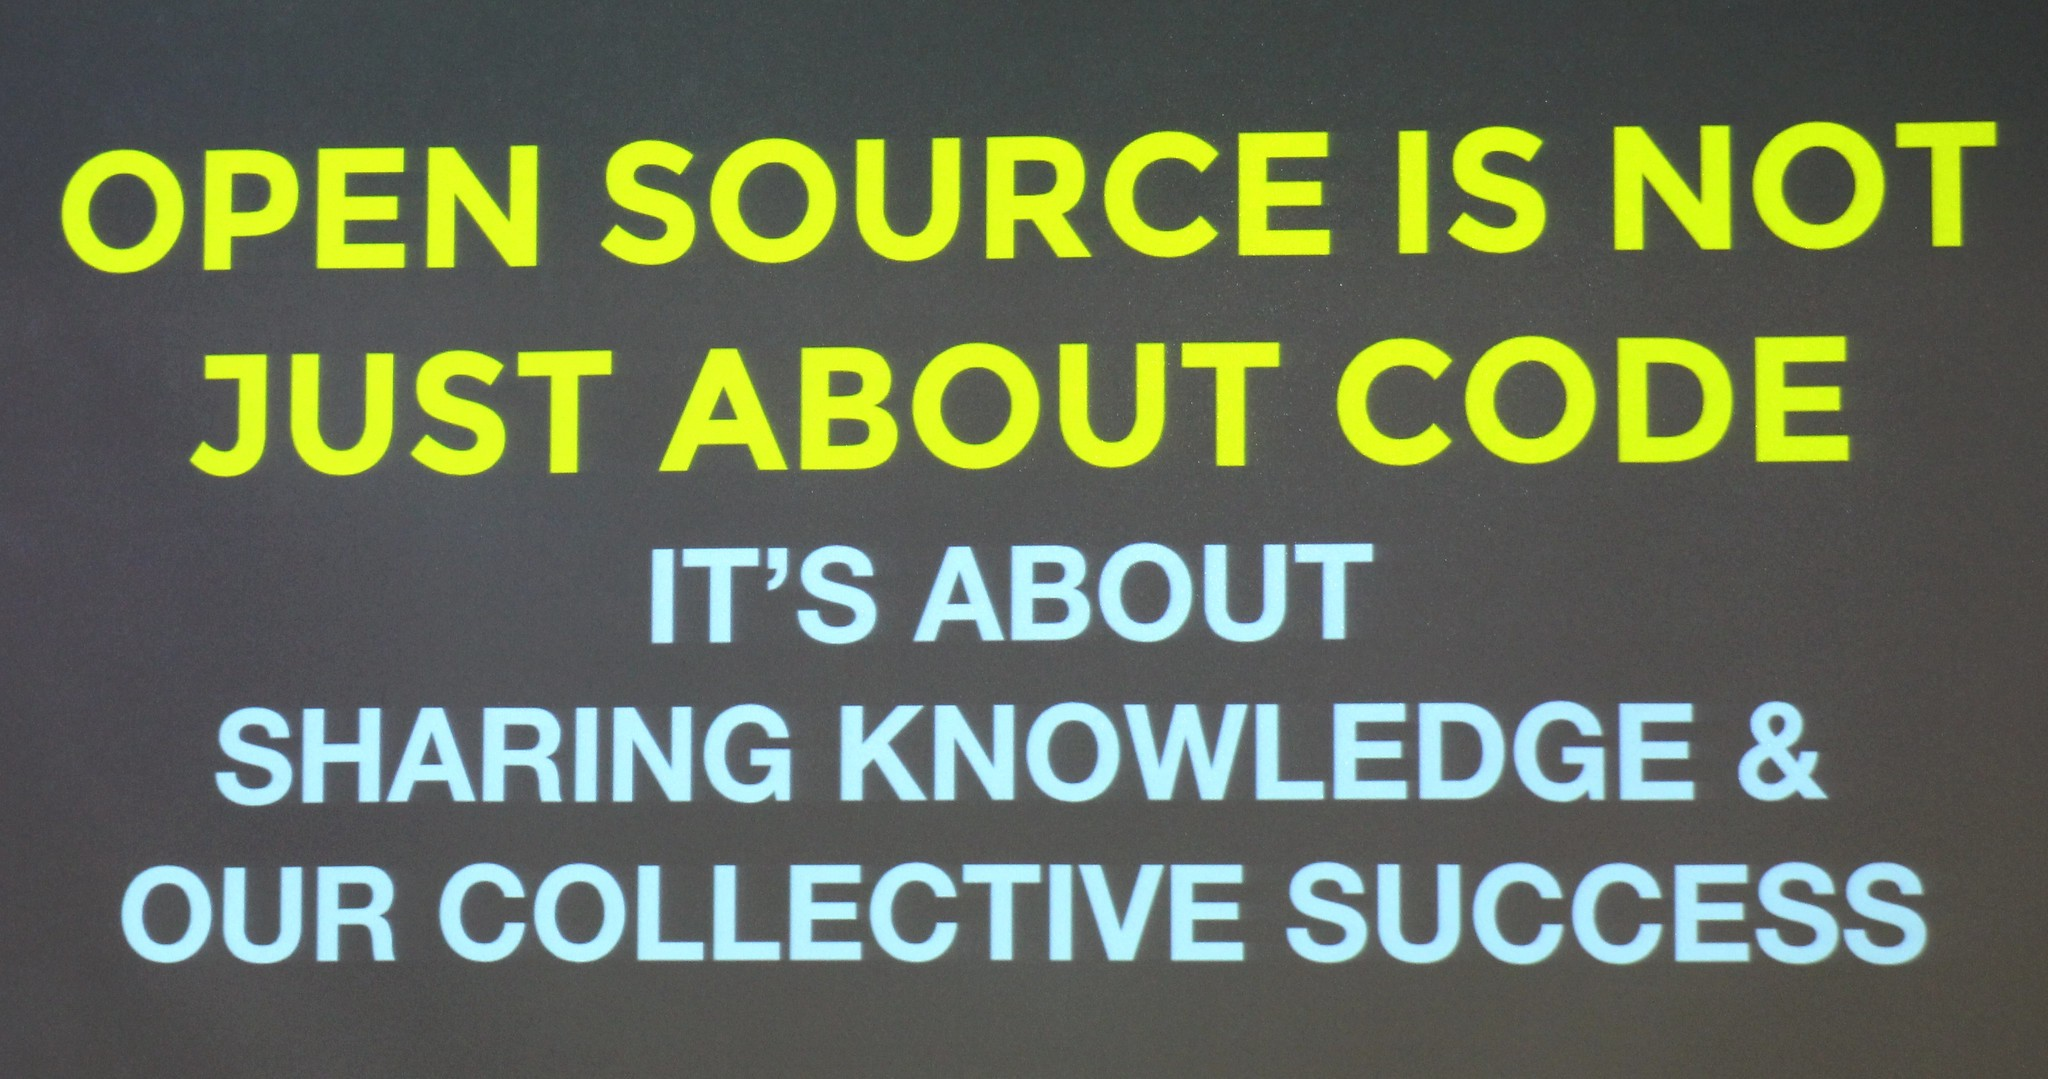 Open source is not jut about code: It's about sharing knowledge and our collective success.